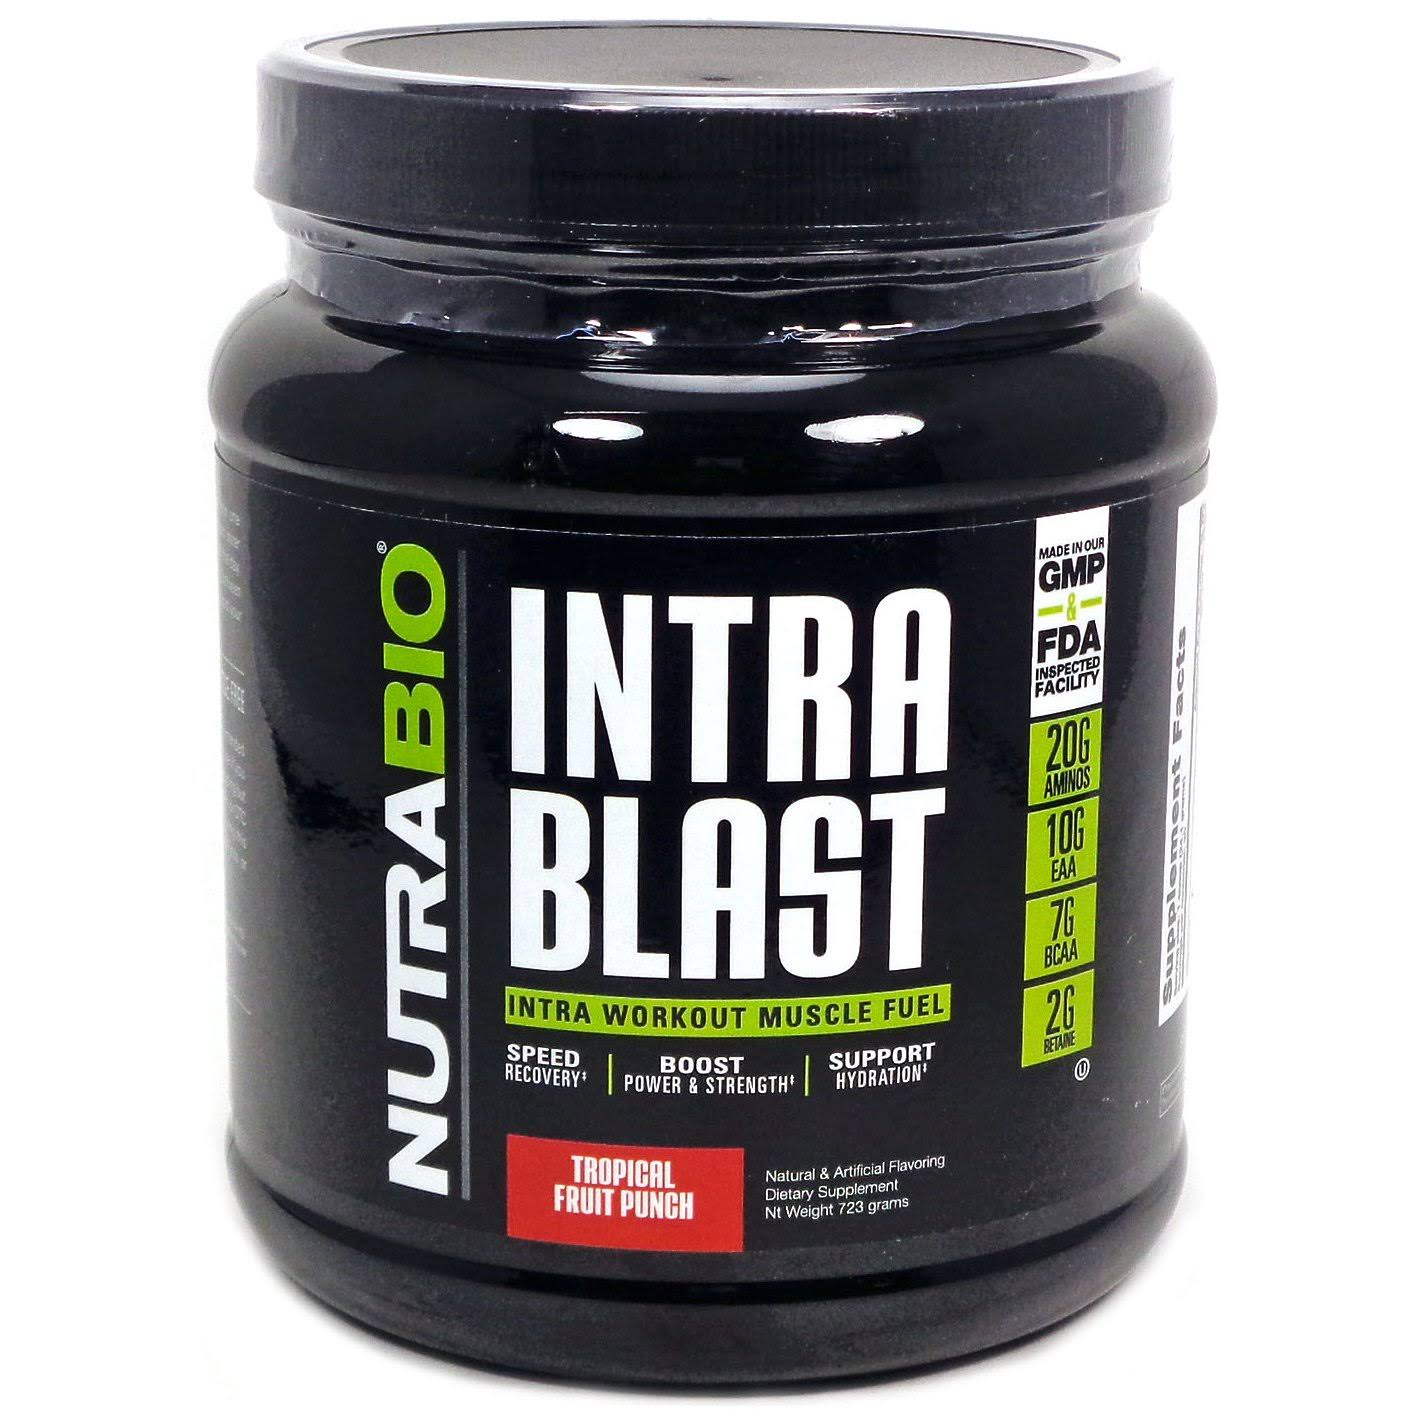 Nutra Bio Intra Blast Intra Workout Muscle Fuel - Tropical Fruit Punch, 30 servings